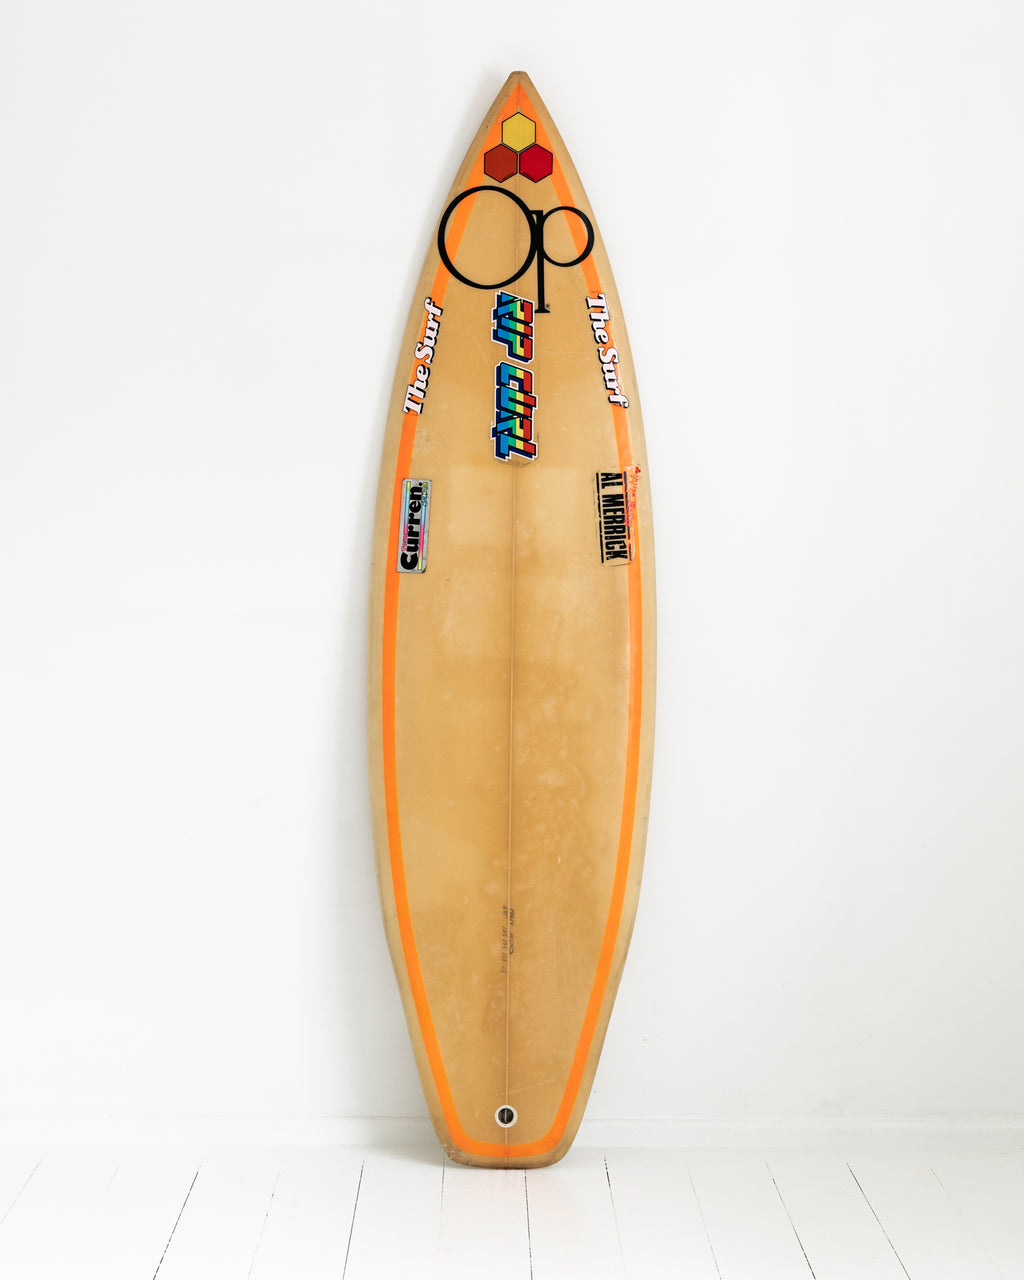 CHANNEL ISLAND - 5'10 Tom Curren, Red Beauty